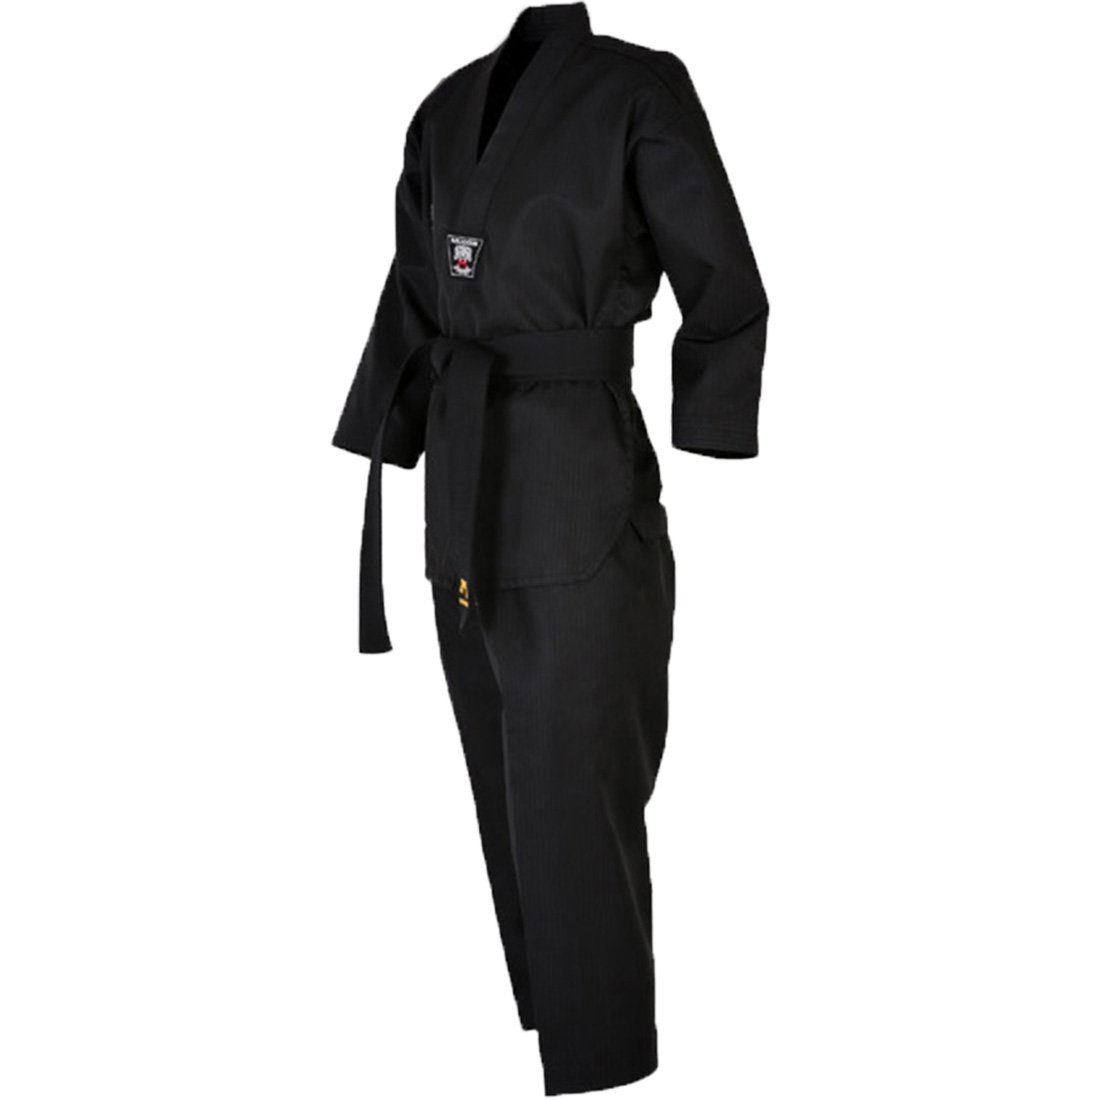 Mudoin Taekwondo 3 Color Uniform for Adults V-Neck Blue Red Black TKD Martial Arts Akido Hapkido WTF (180(170-180cm)(5.57-5.90ft), Black) by Mudoin